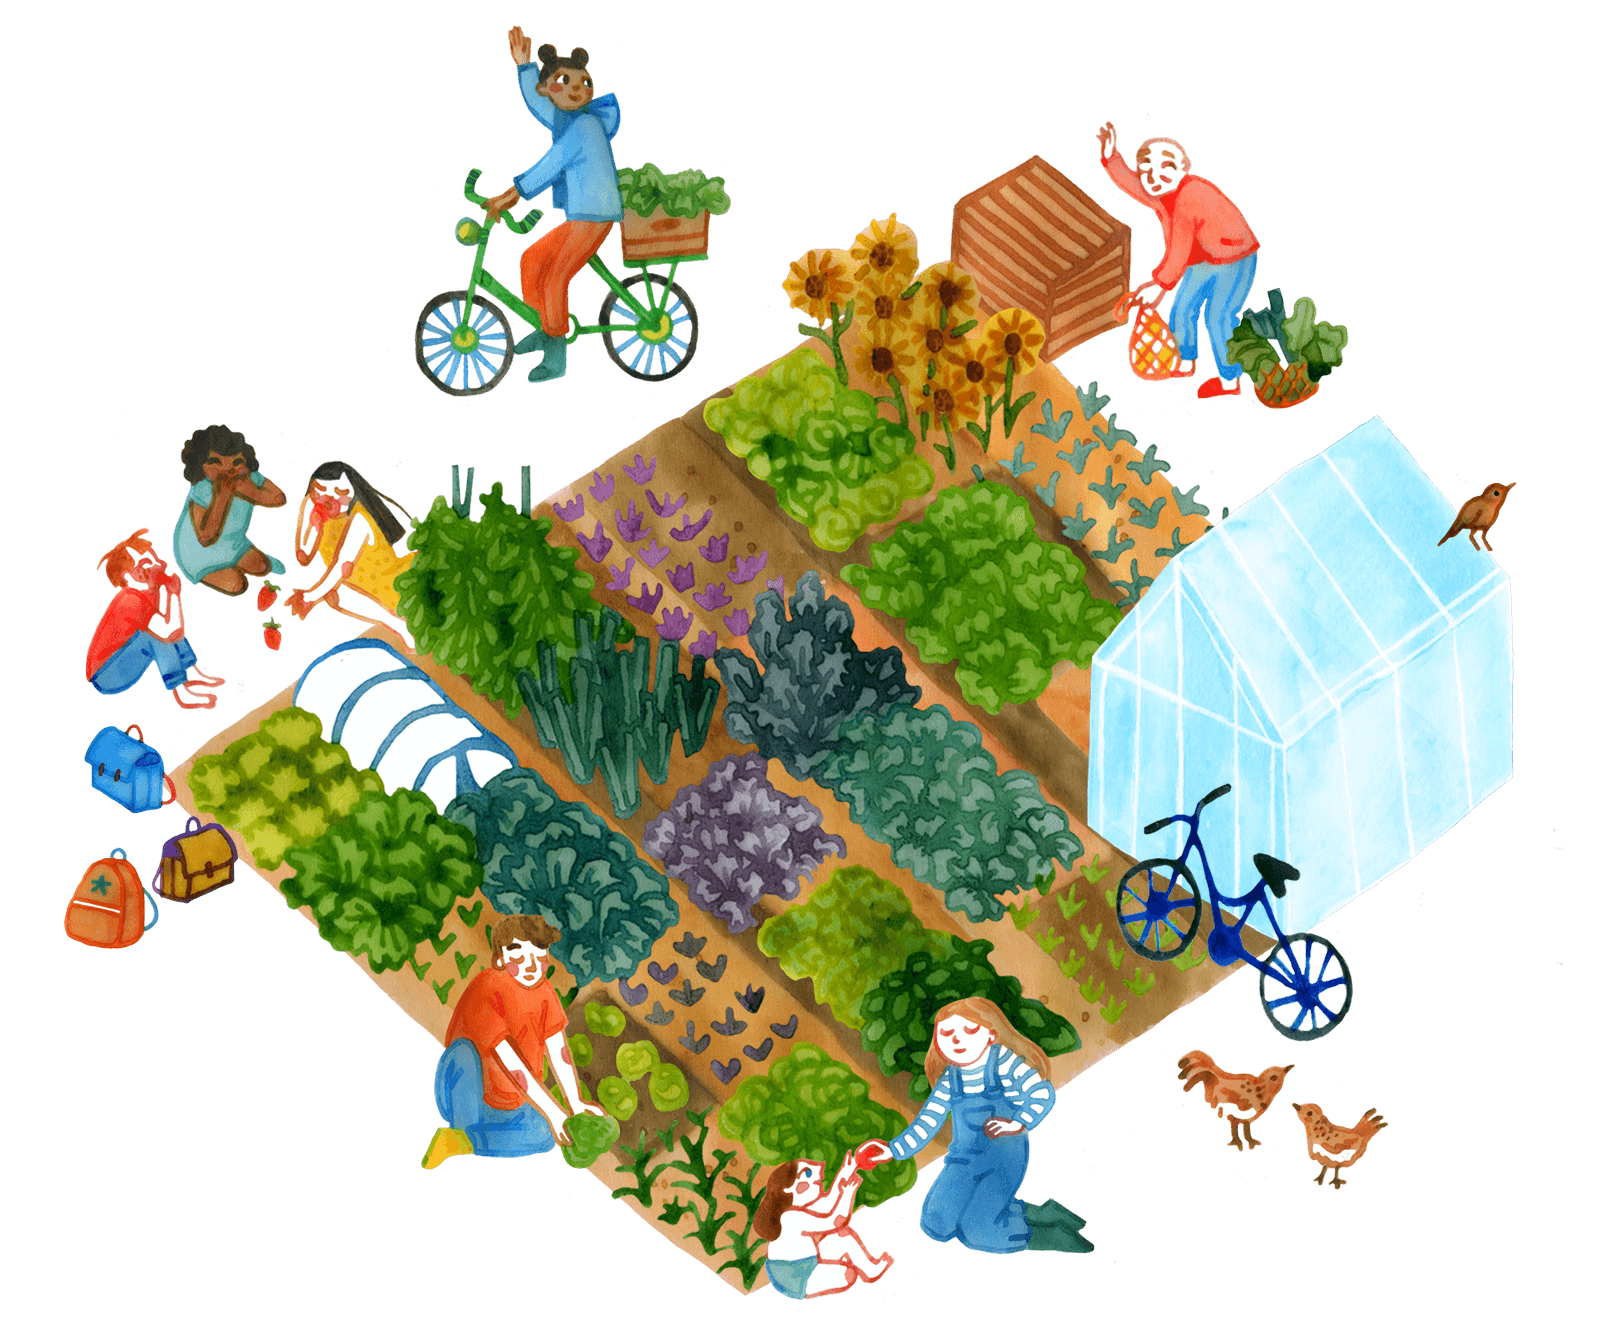 Illustration of a garden tended by a diverse community.